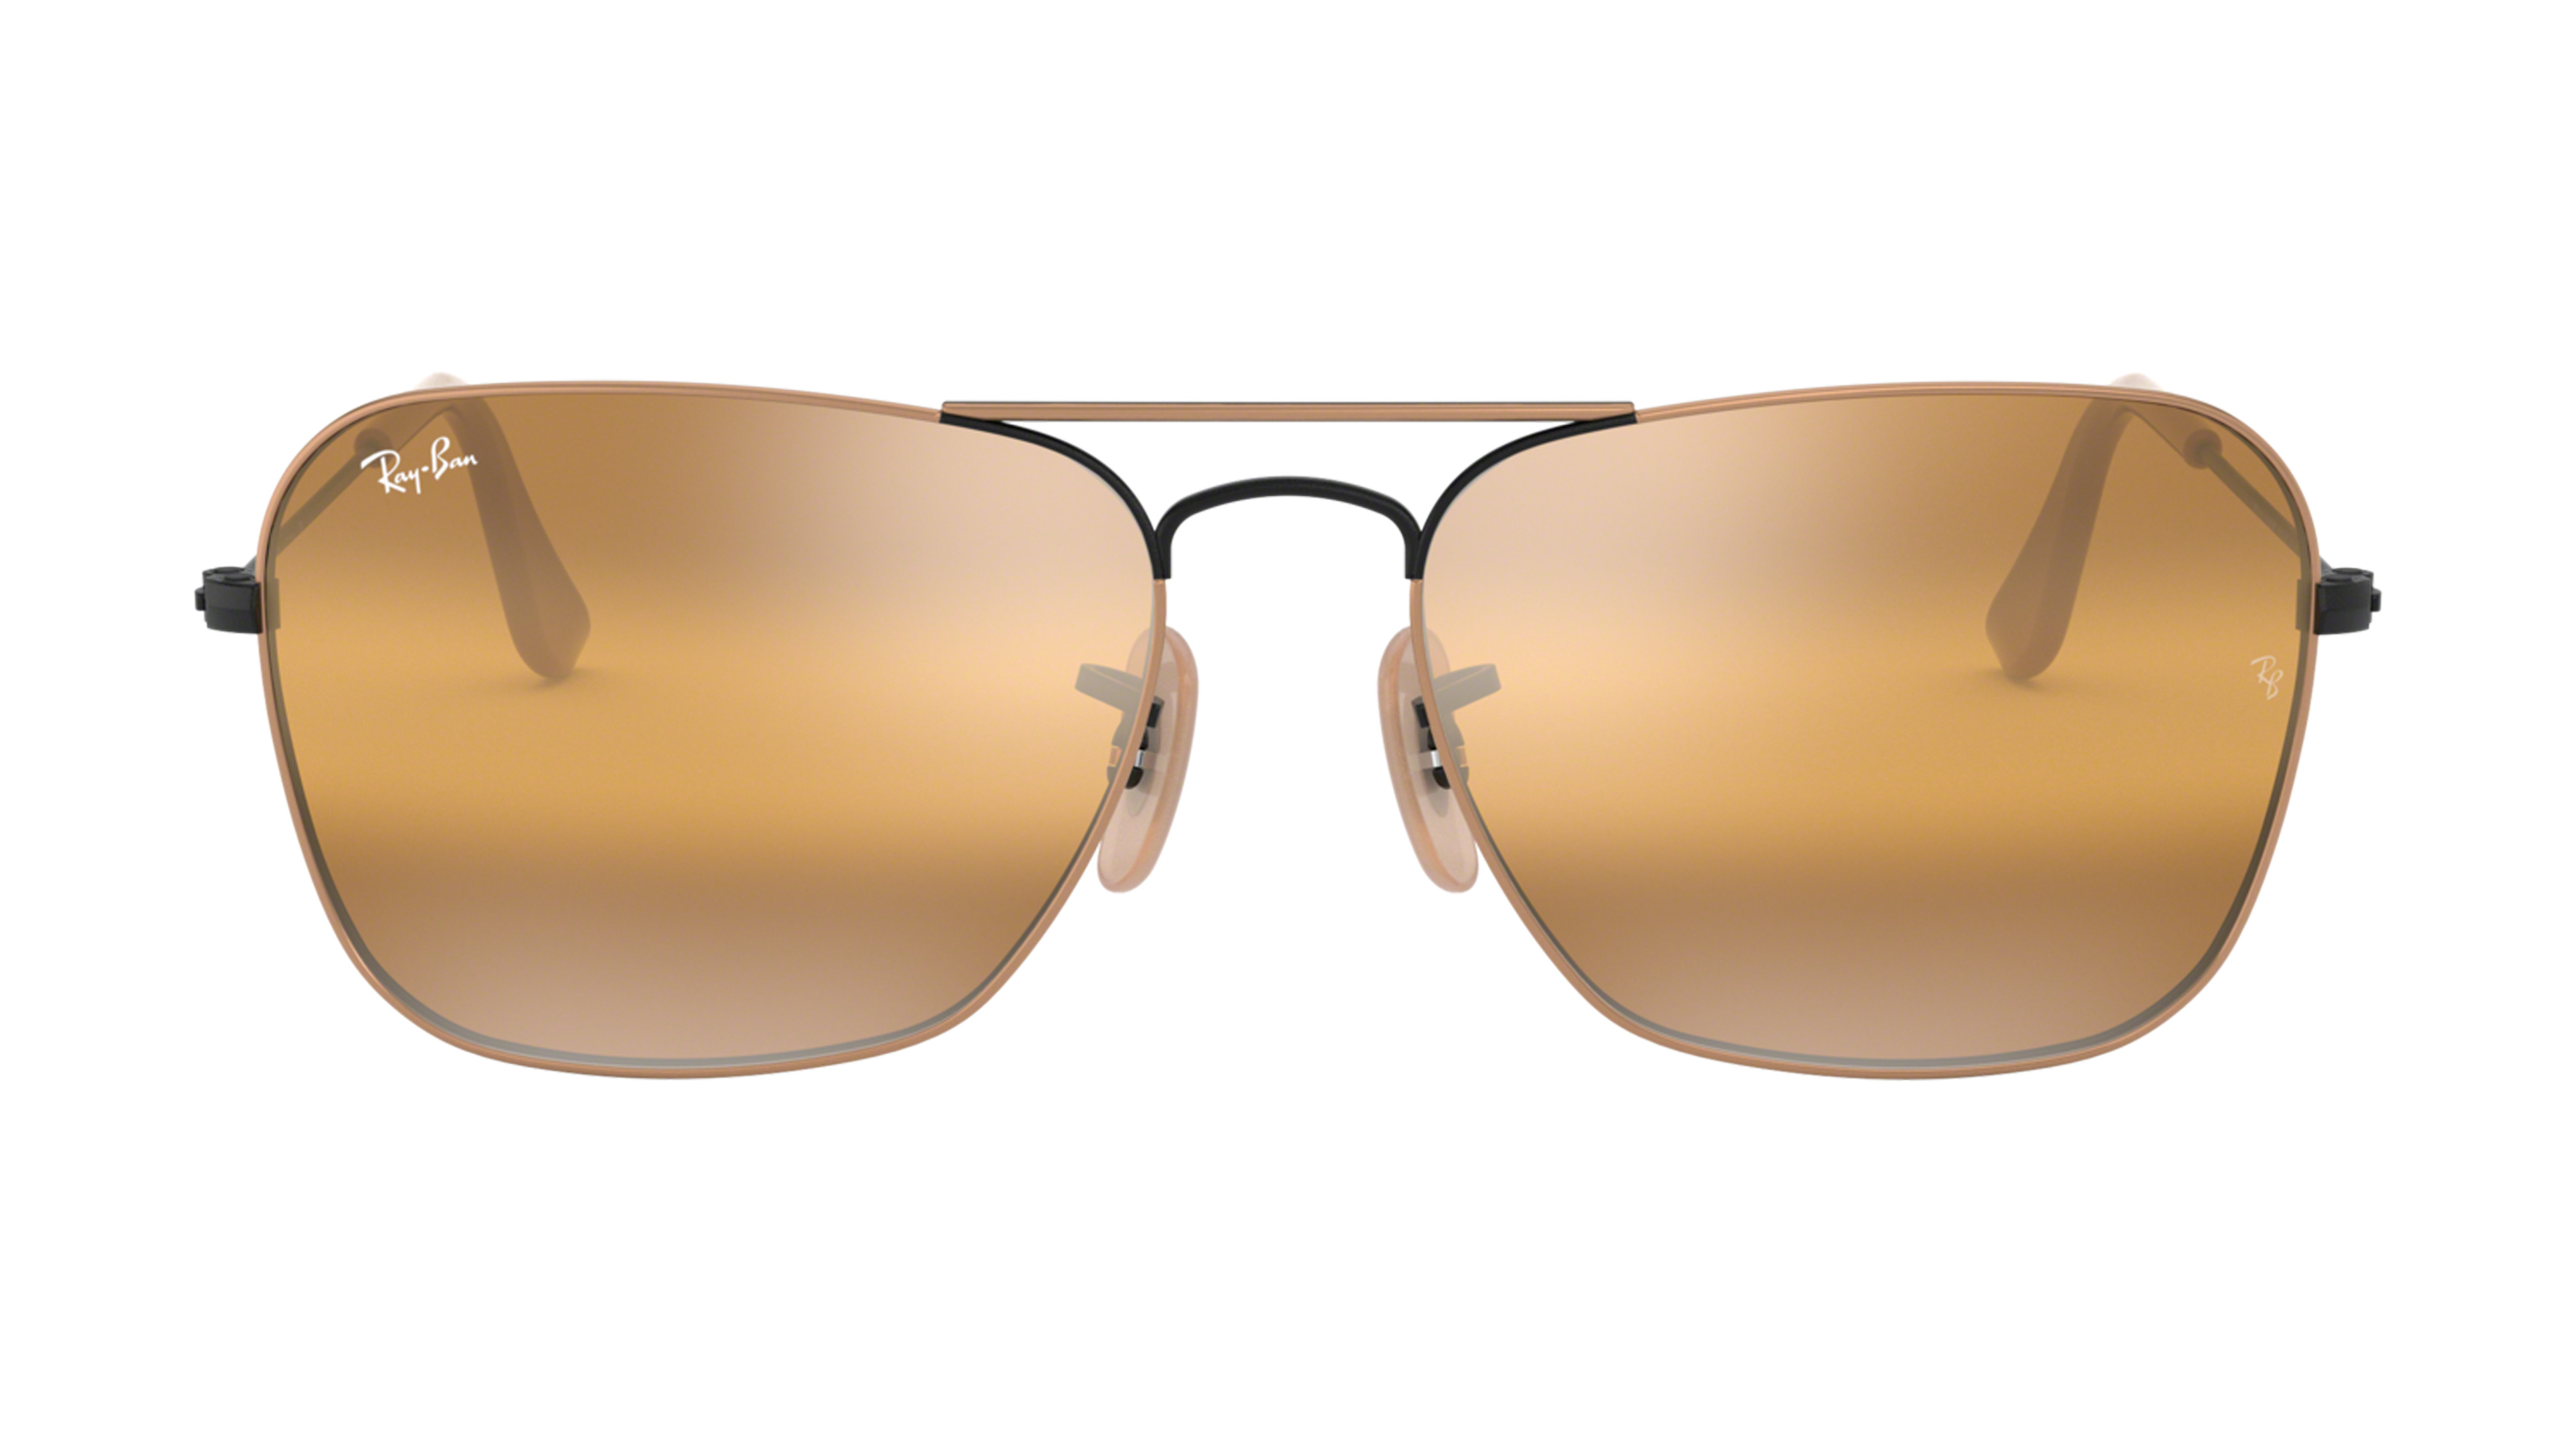 8056597044110-front-Ray-Ban-0RB3136-9153AG